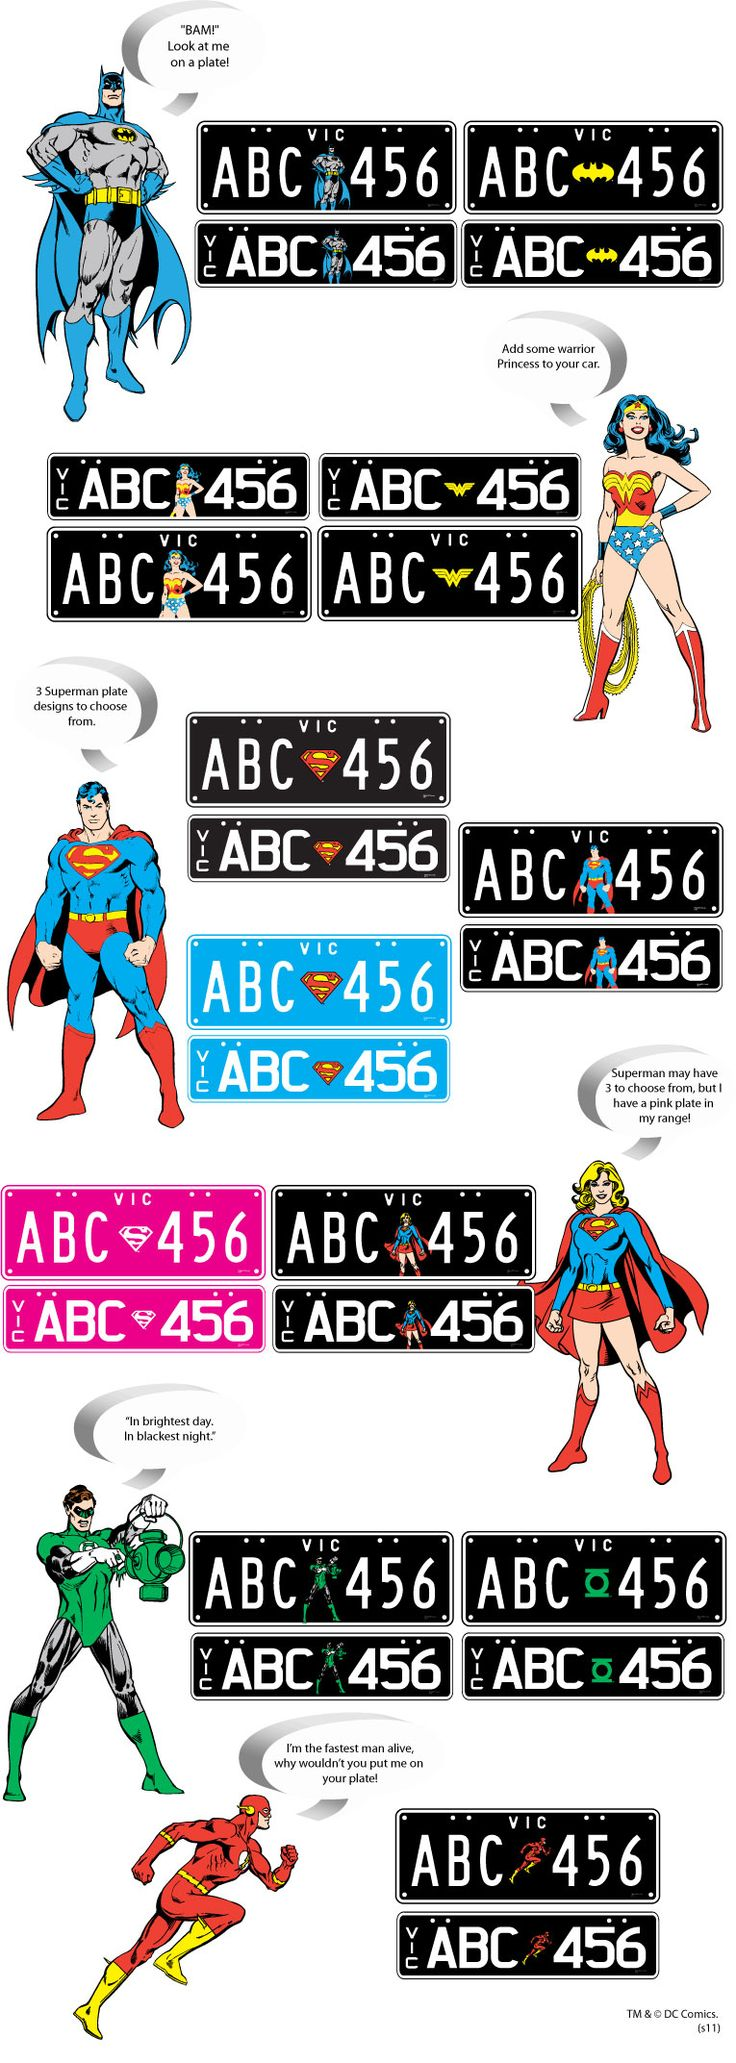 I would totally have superhero number plates if I lived in Aus!